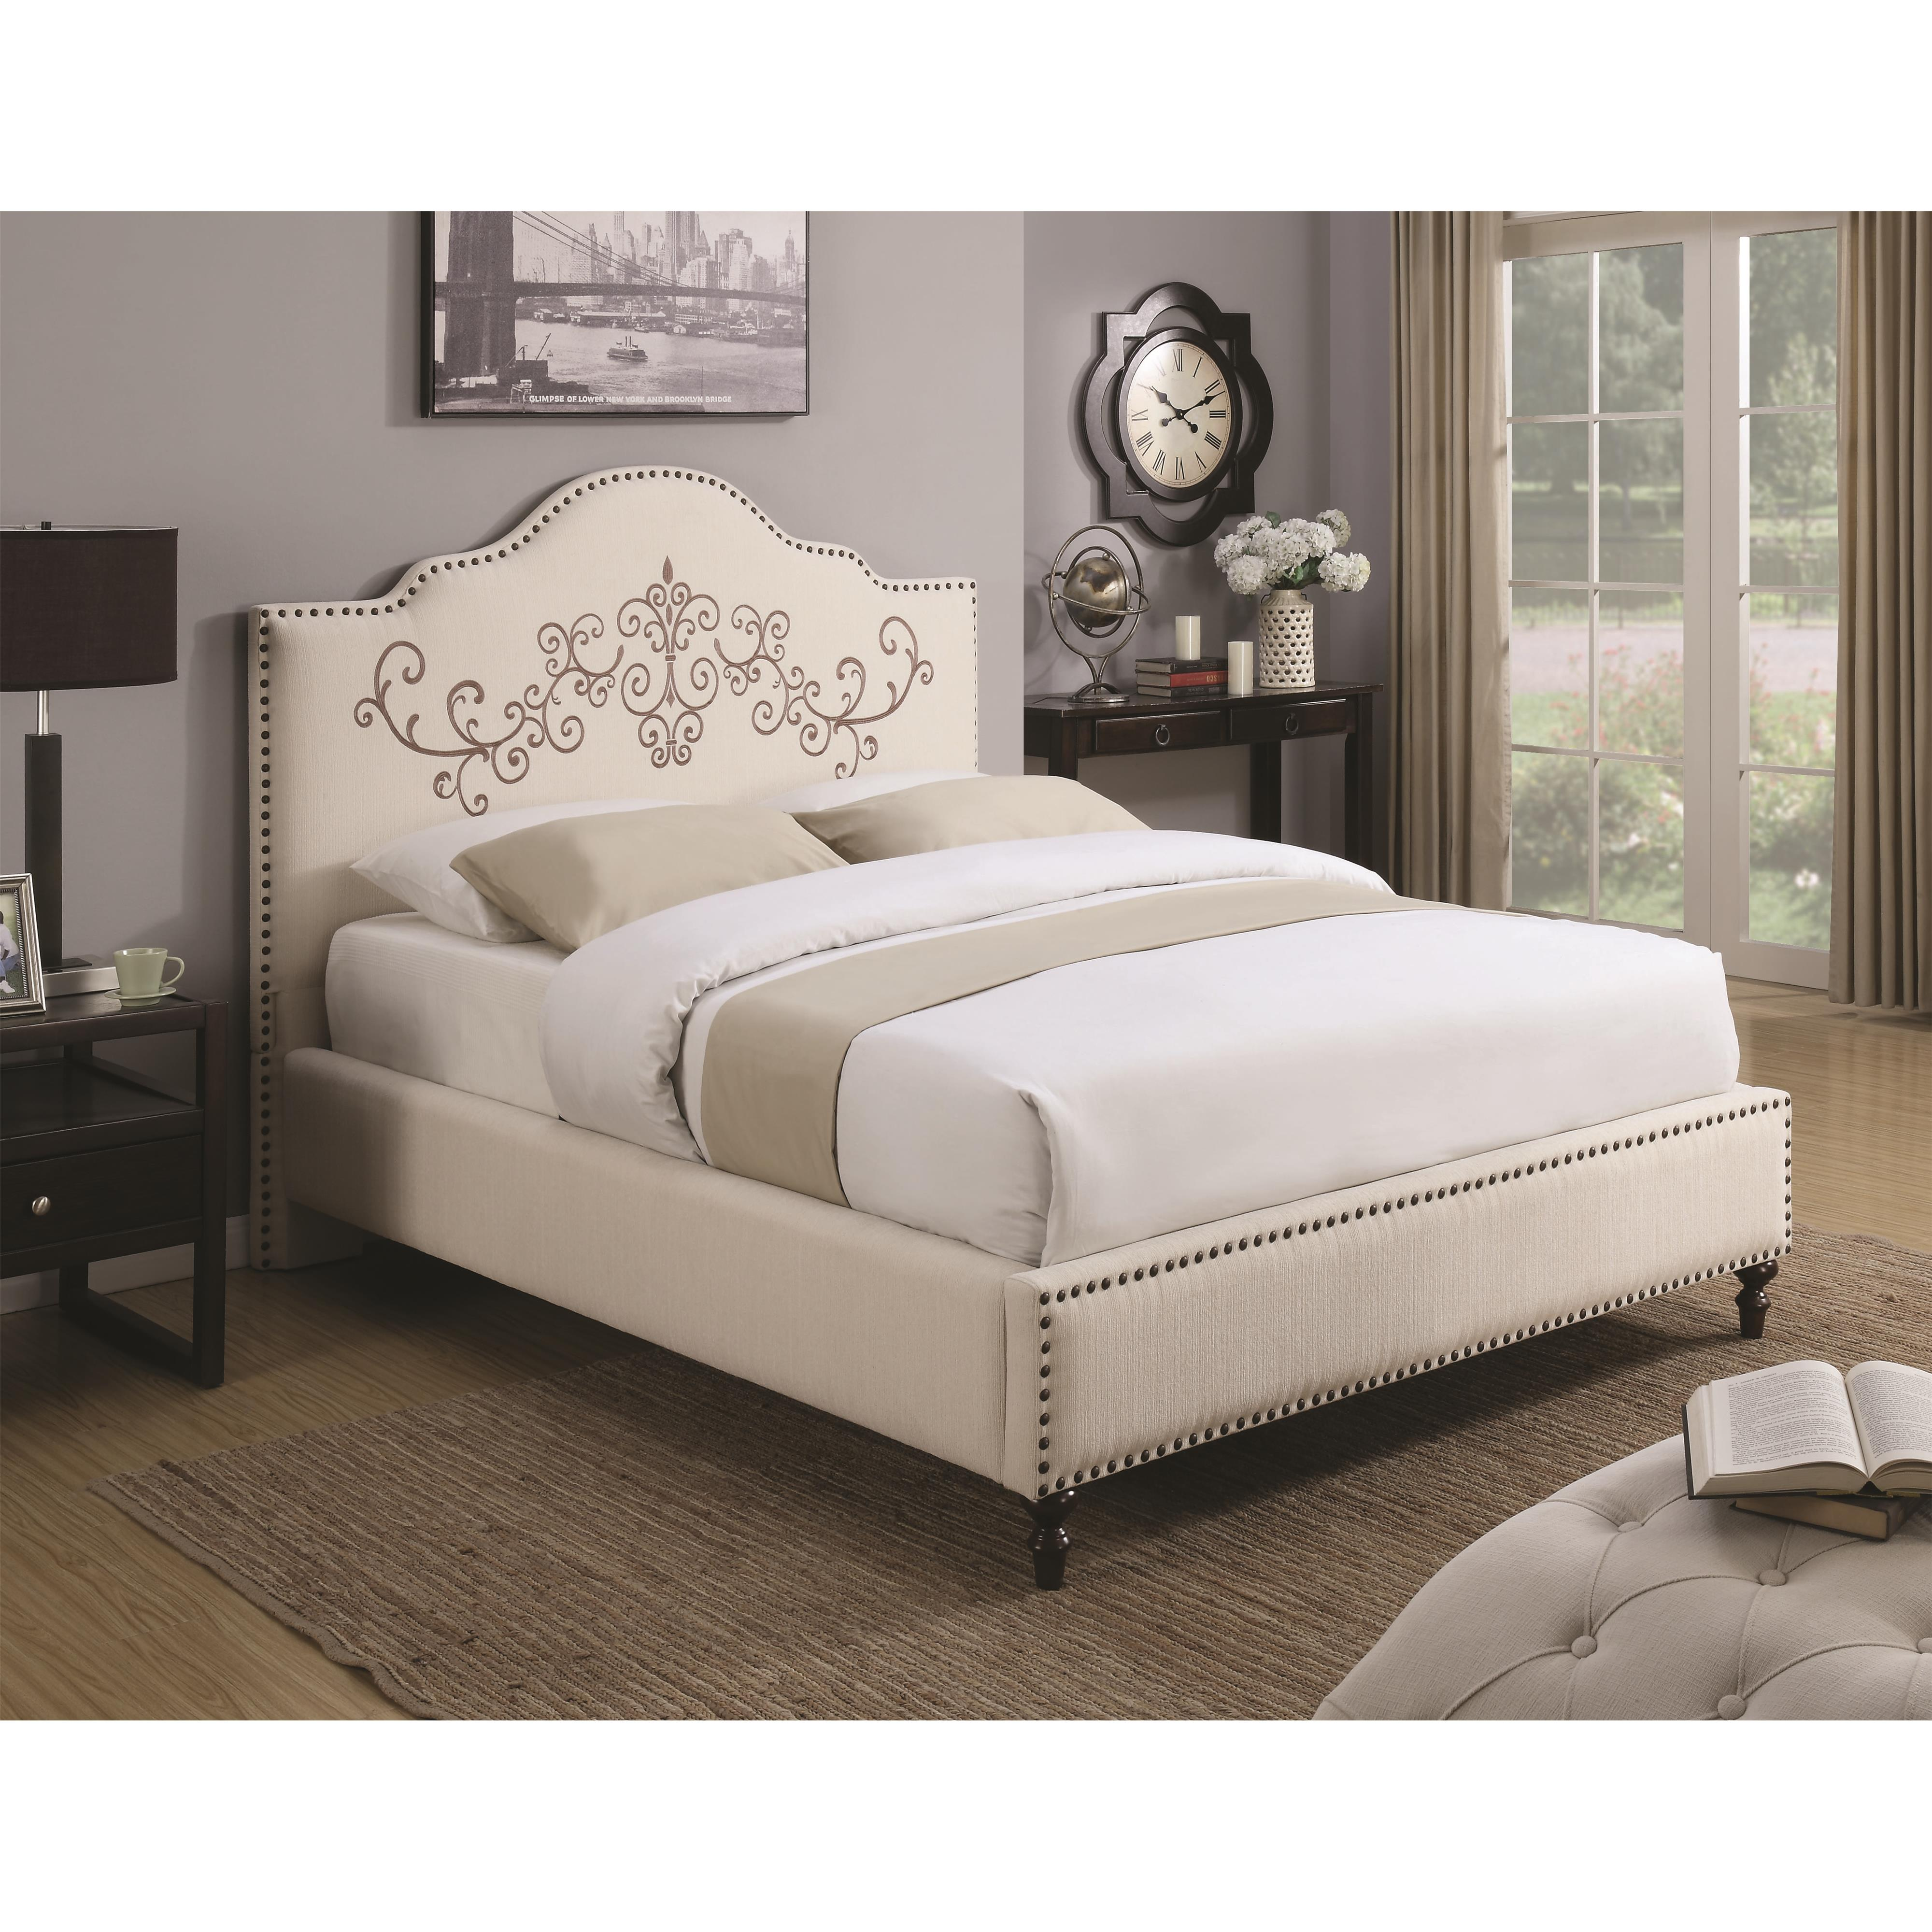 Coaster Homecrest California King Bed - Item Number: 300491KW